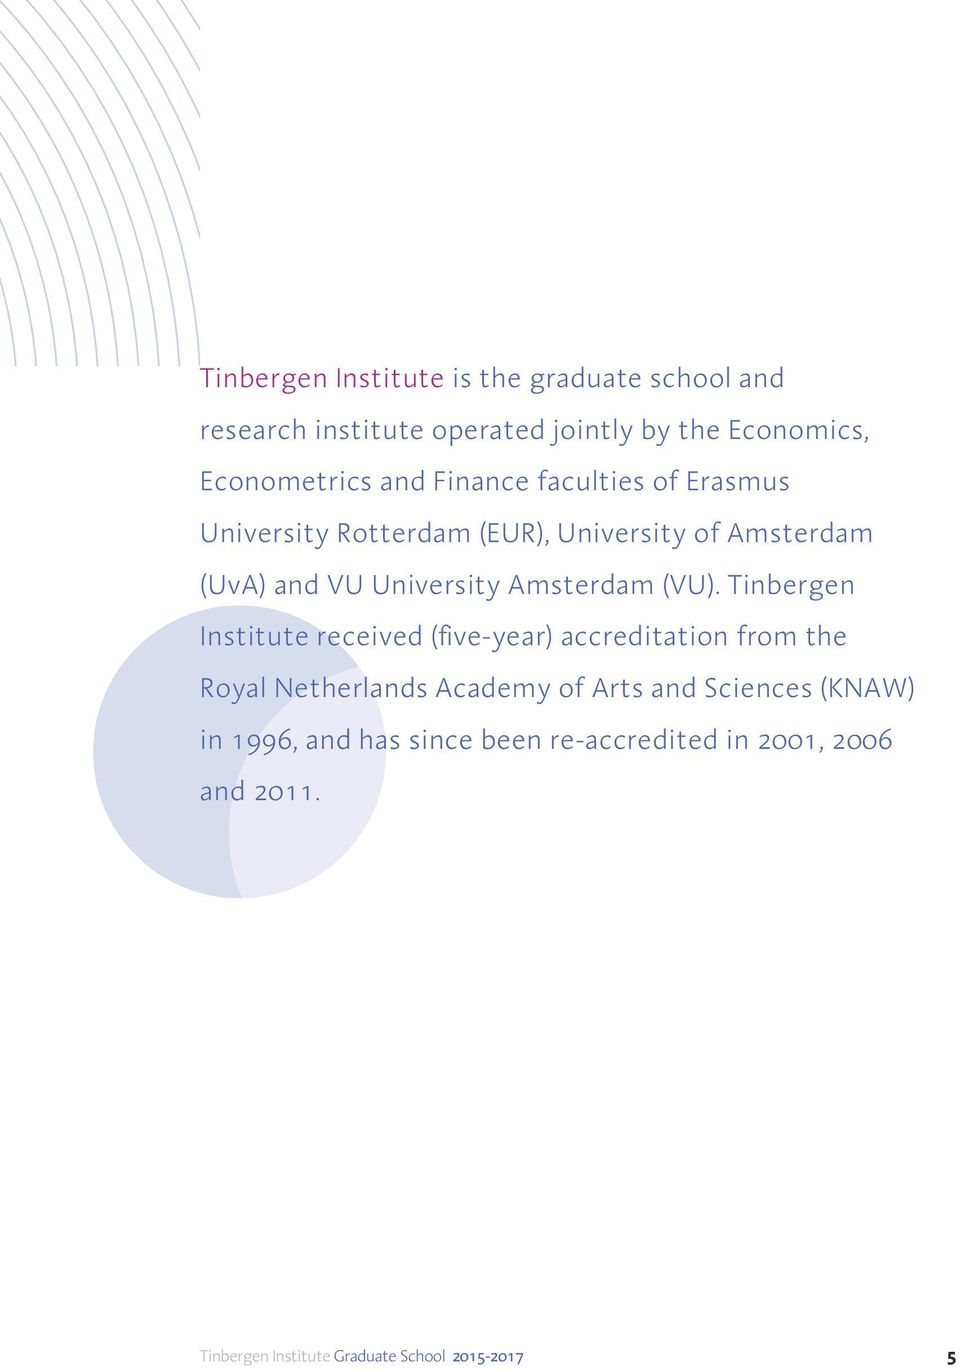 (VU). Tinbergen Institute received (five-year) accreditation from the Royal Netherlands Academy of Arts and Sciences